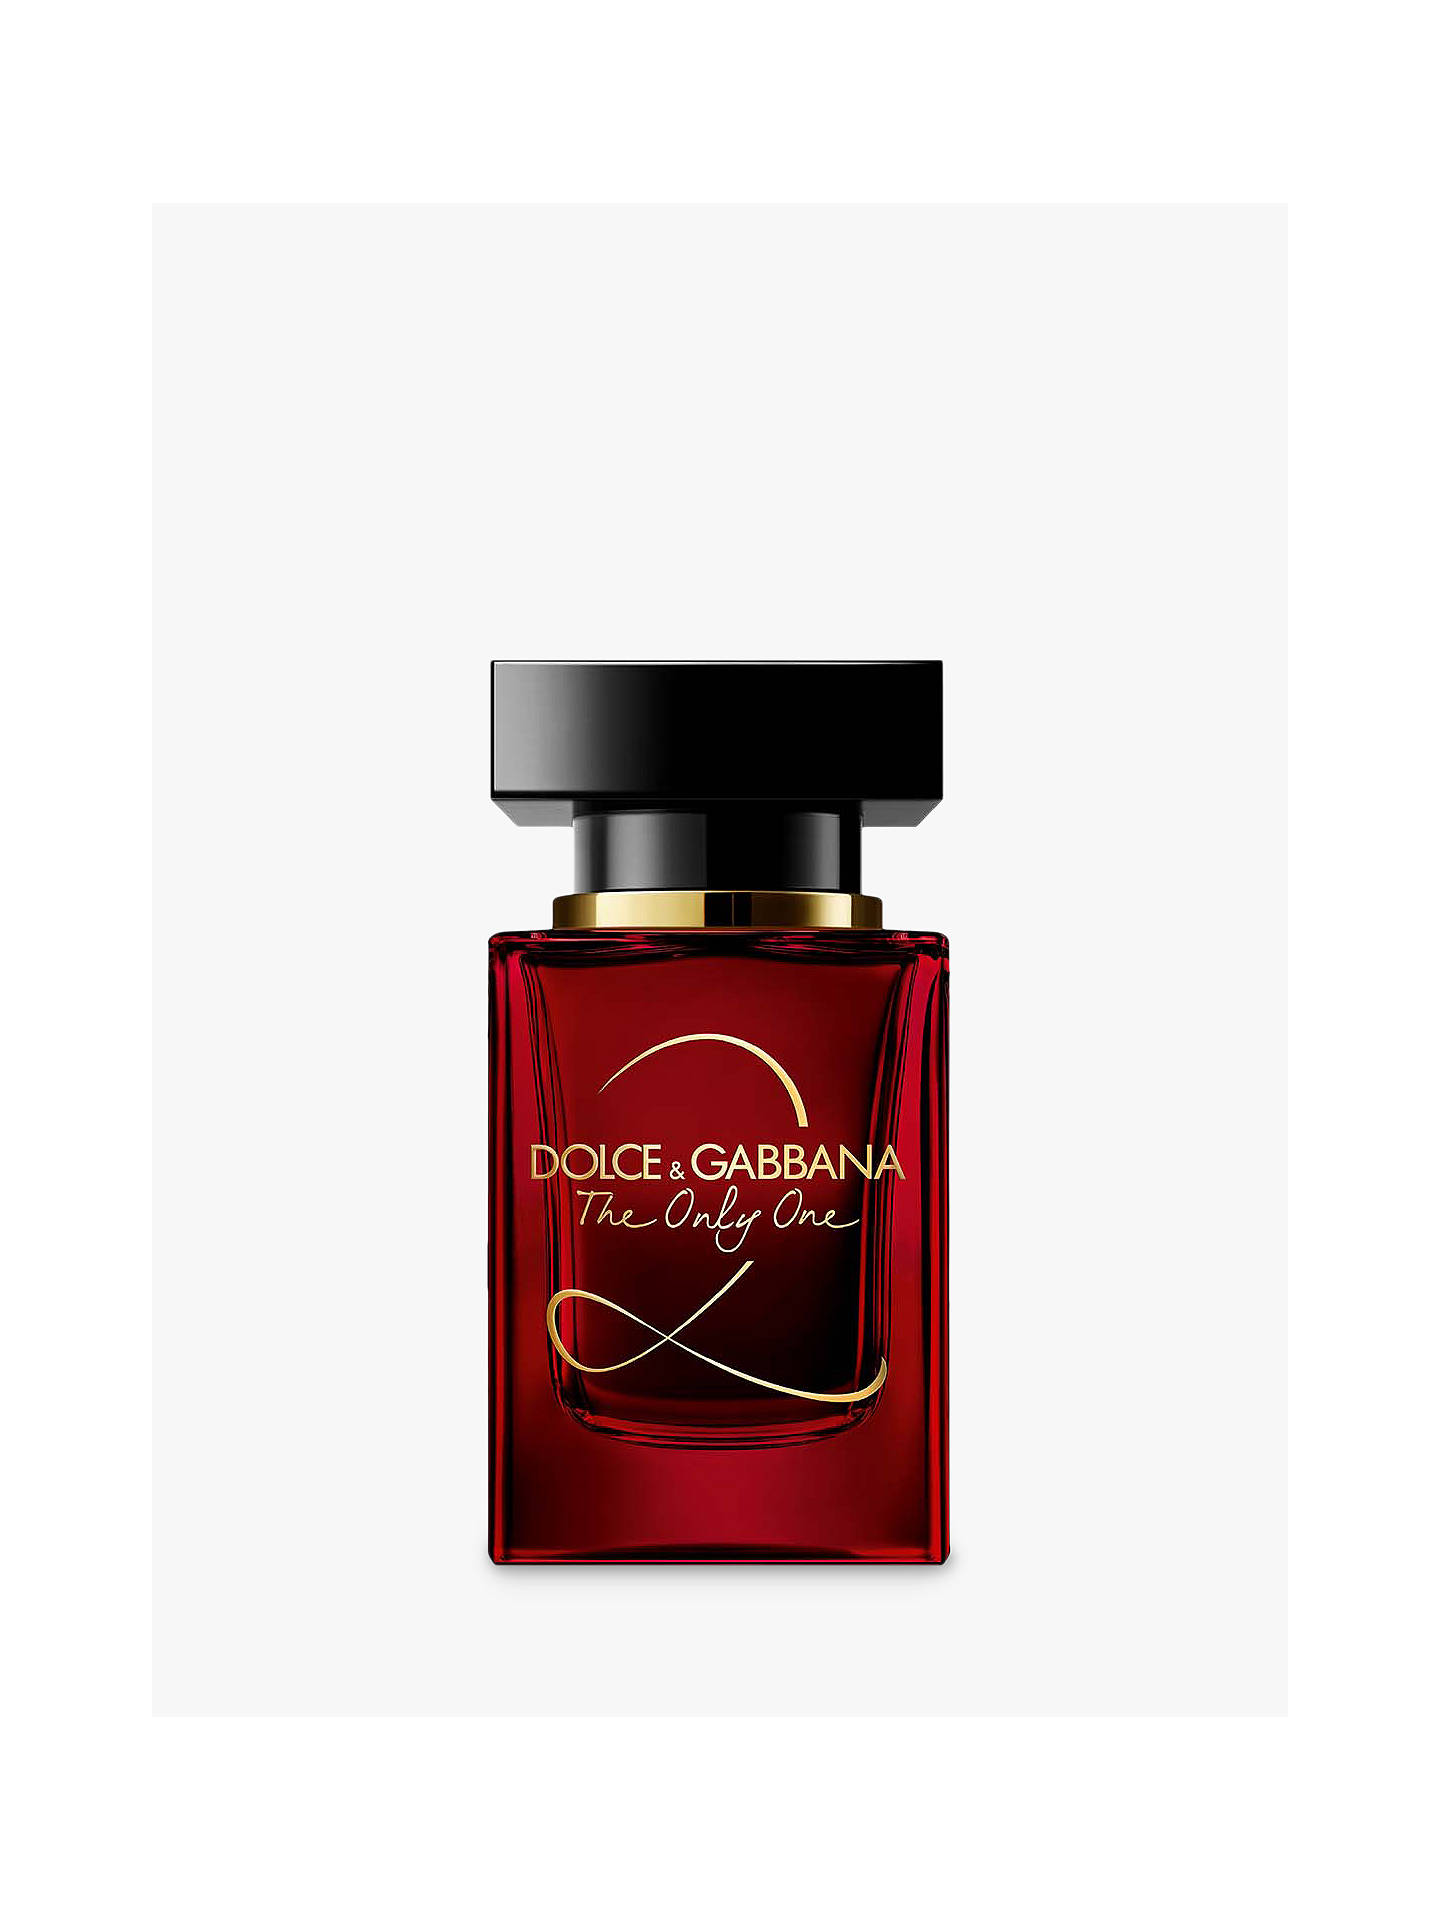 7ef0d4f964d5 Dolce   Gabbana The Only One 2 Eau de Parfum at John Lewis   Partners